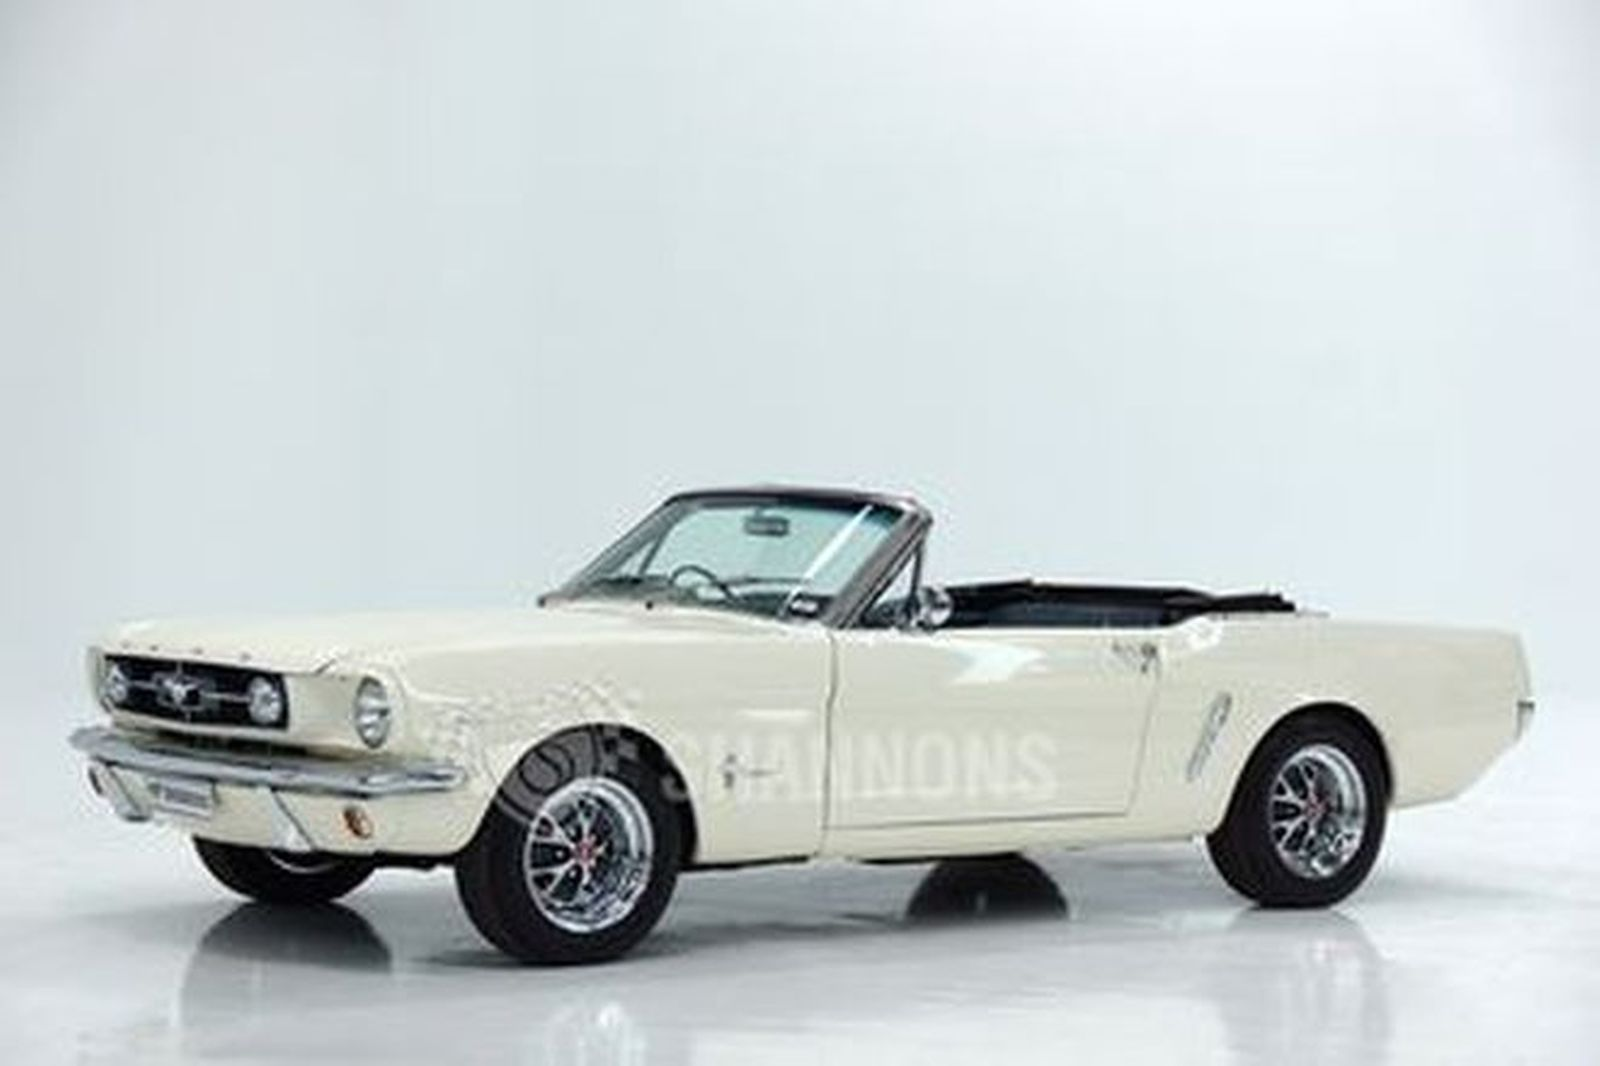 Sold Ford Mustang Convertible Rhd Auctions Lot 39 Shannons 1964